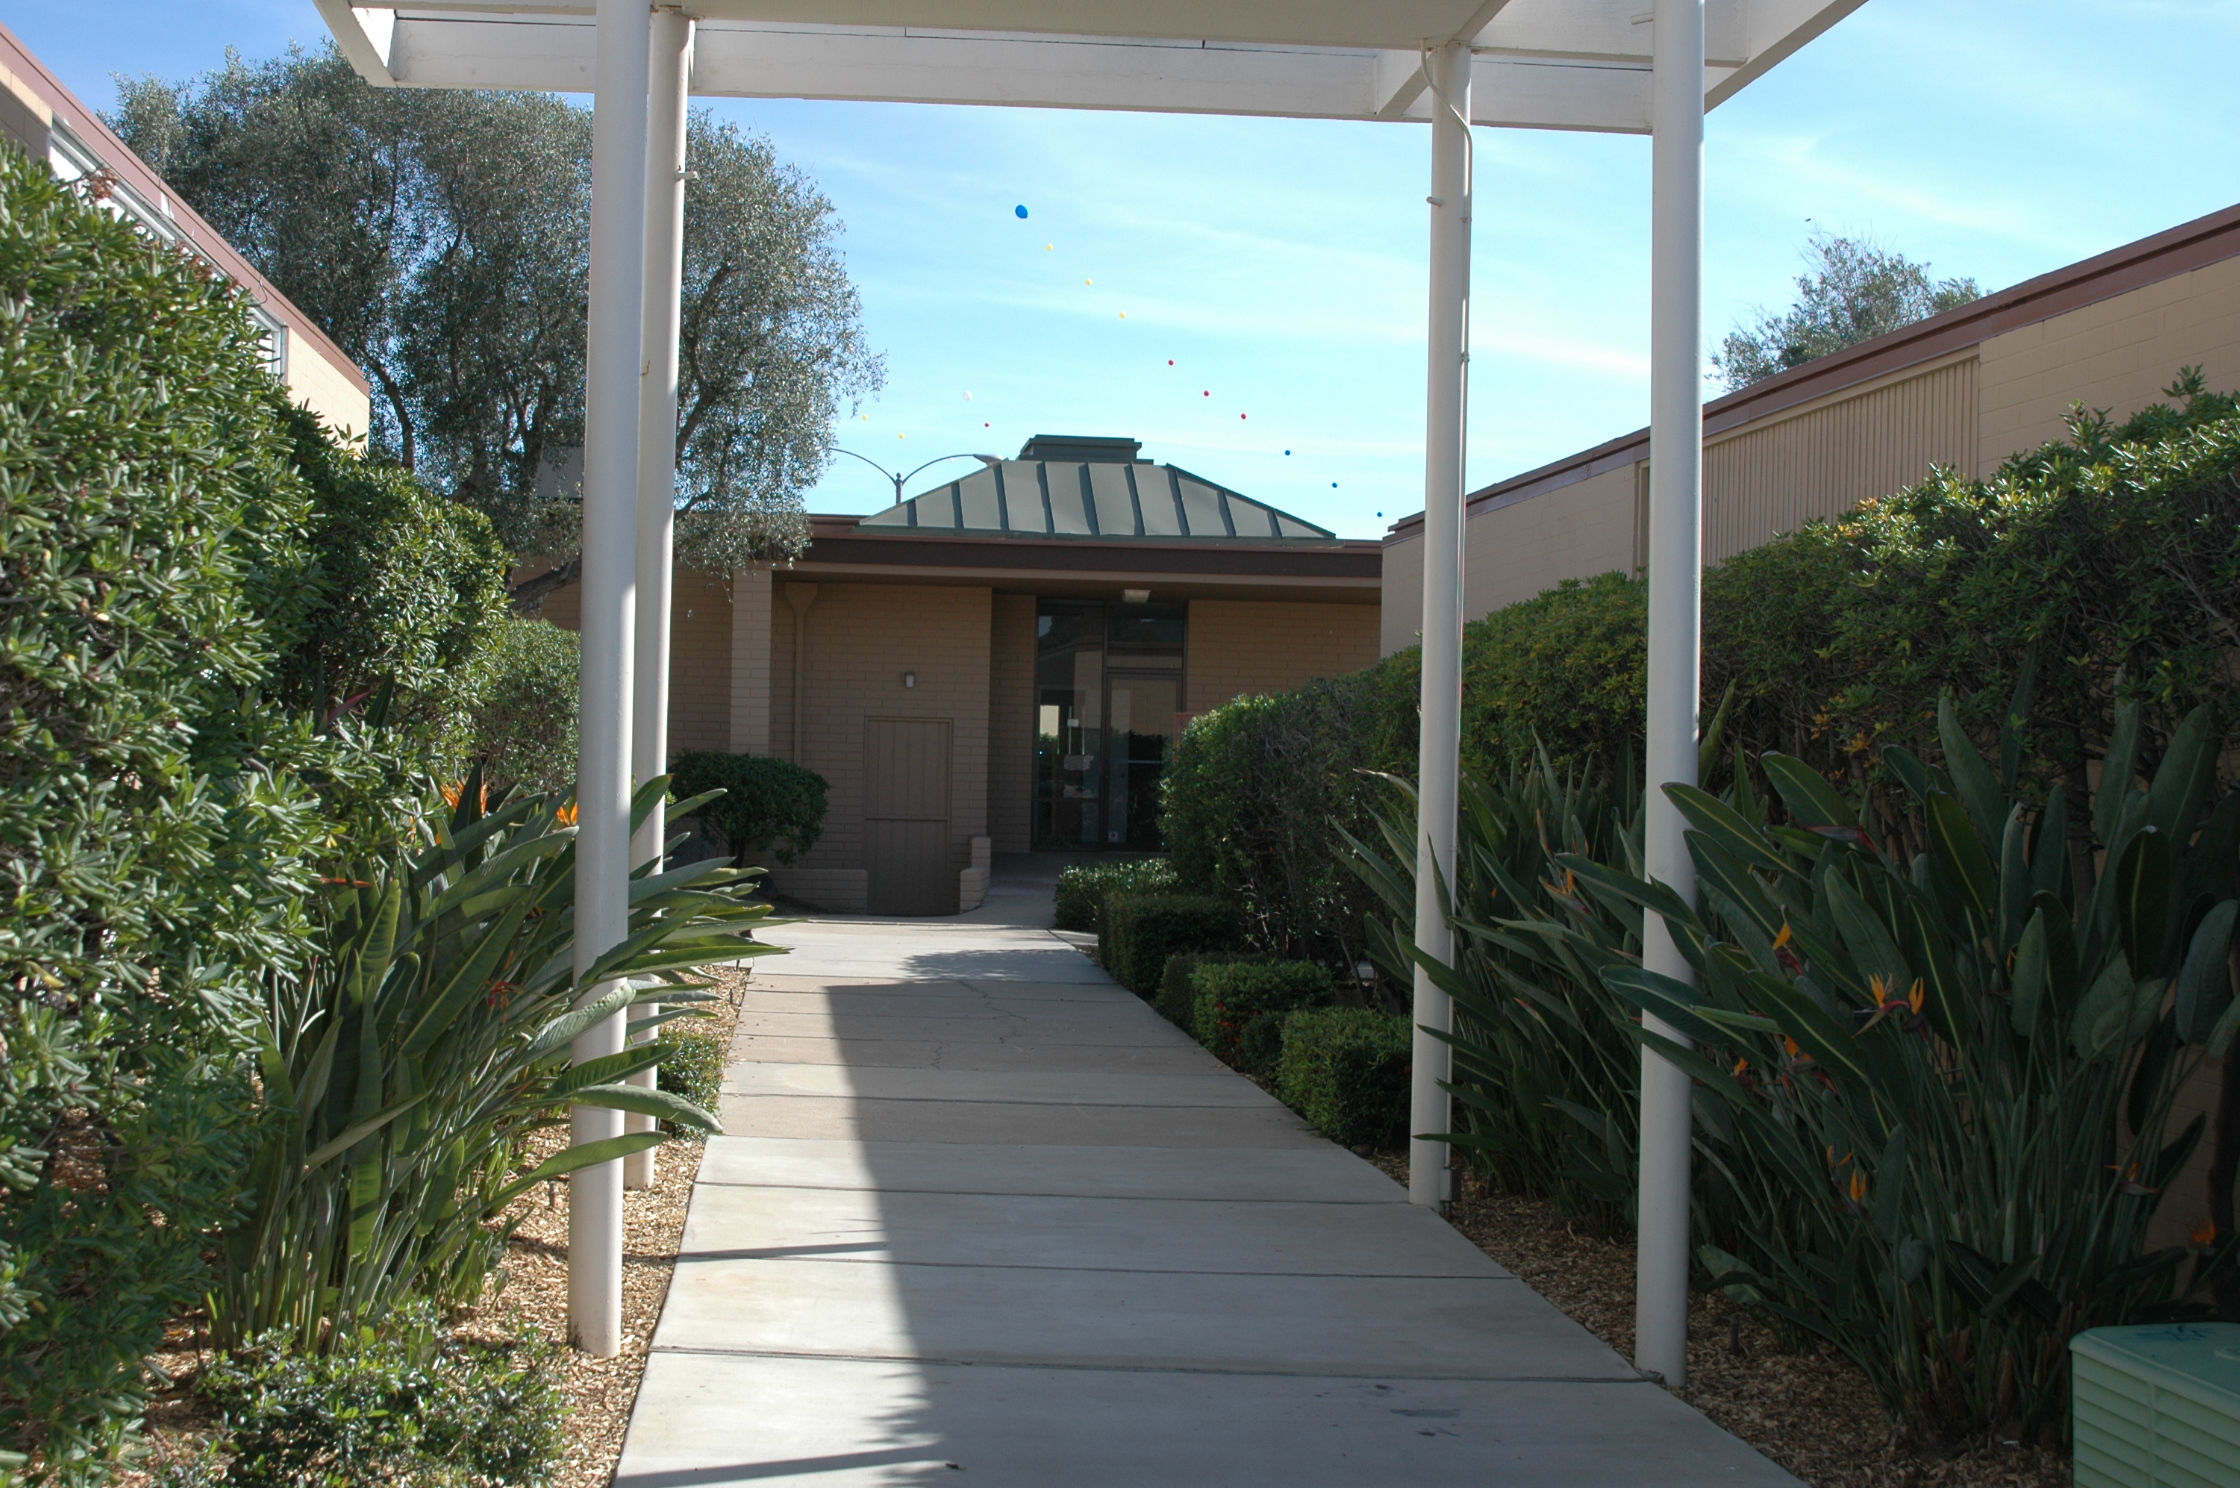 Prayer Center Entrance